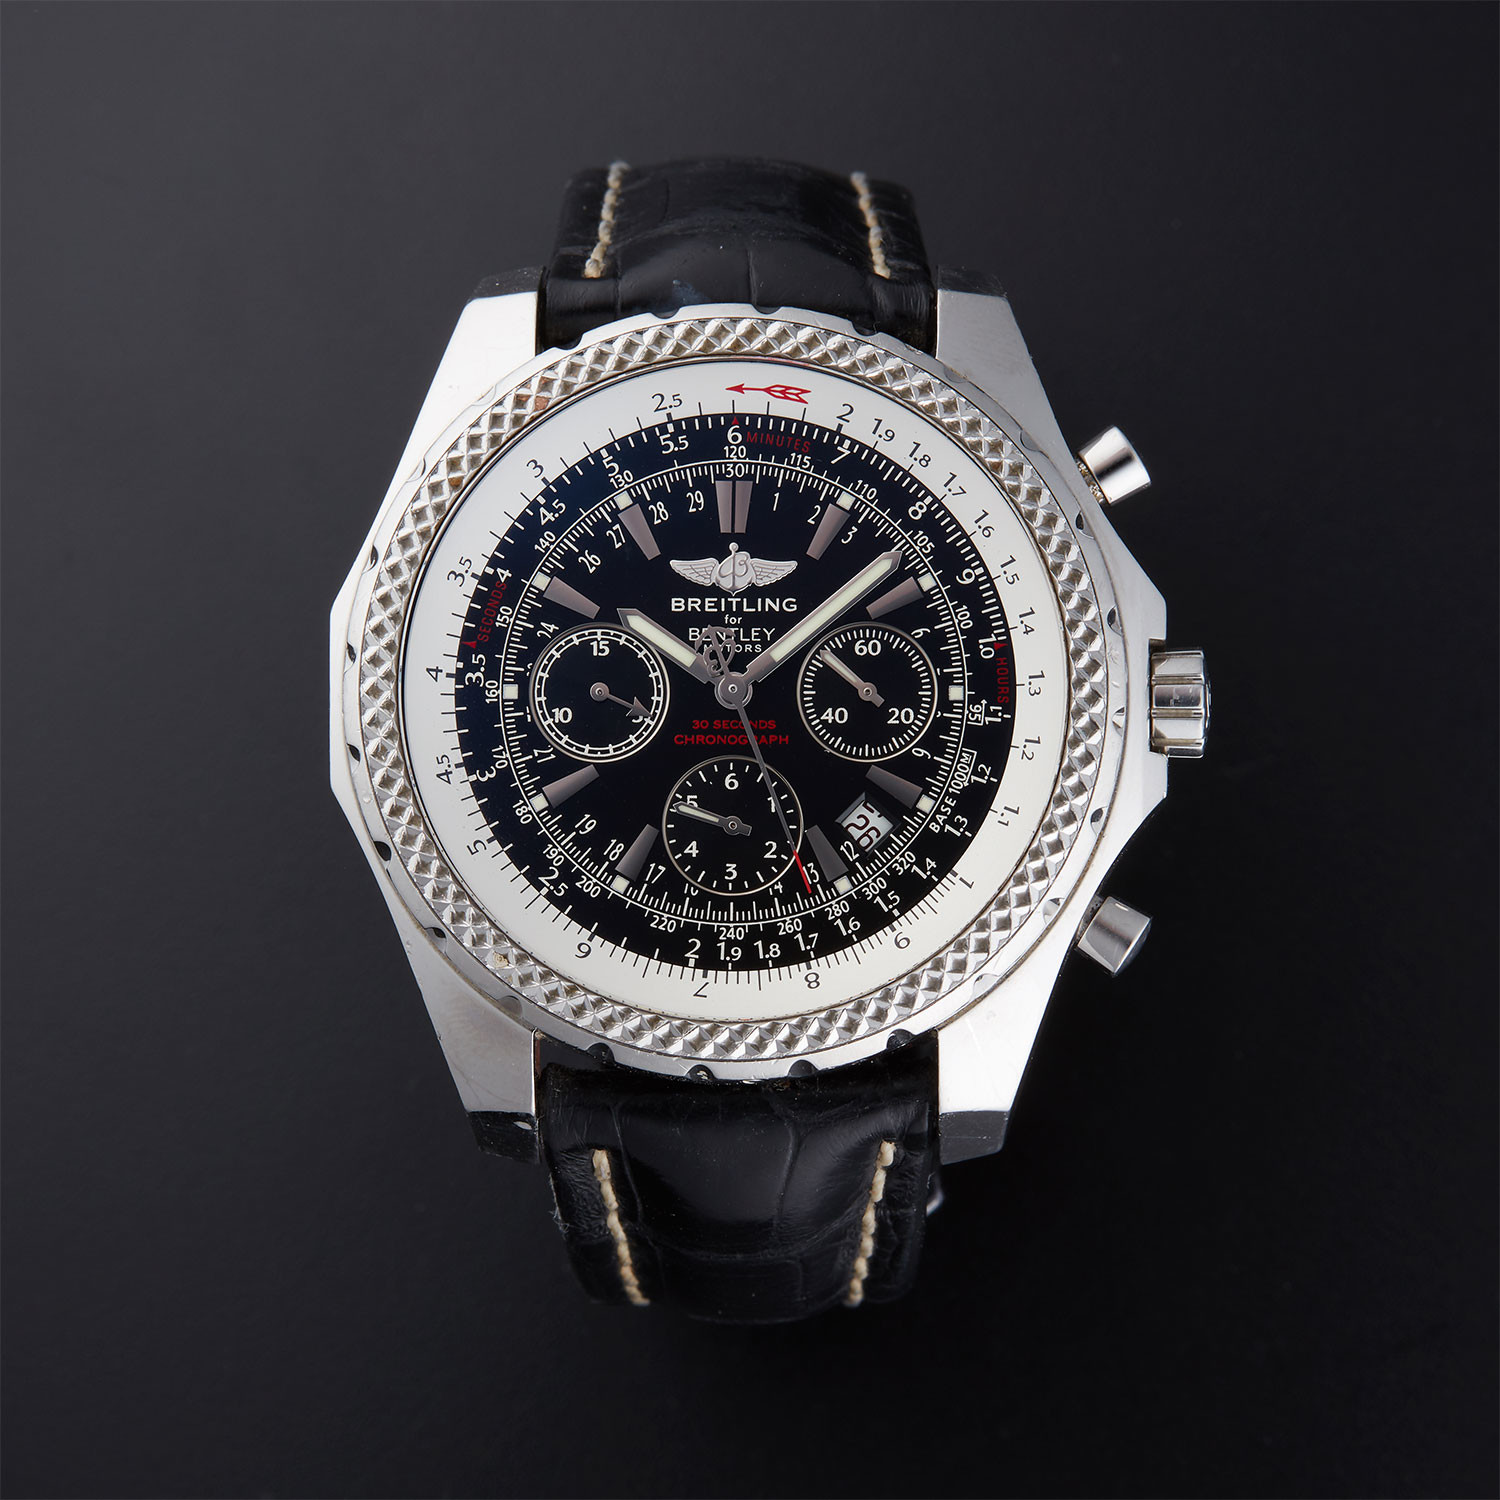 wow bentley special edition black breitling dial classic watch topnotch